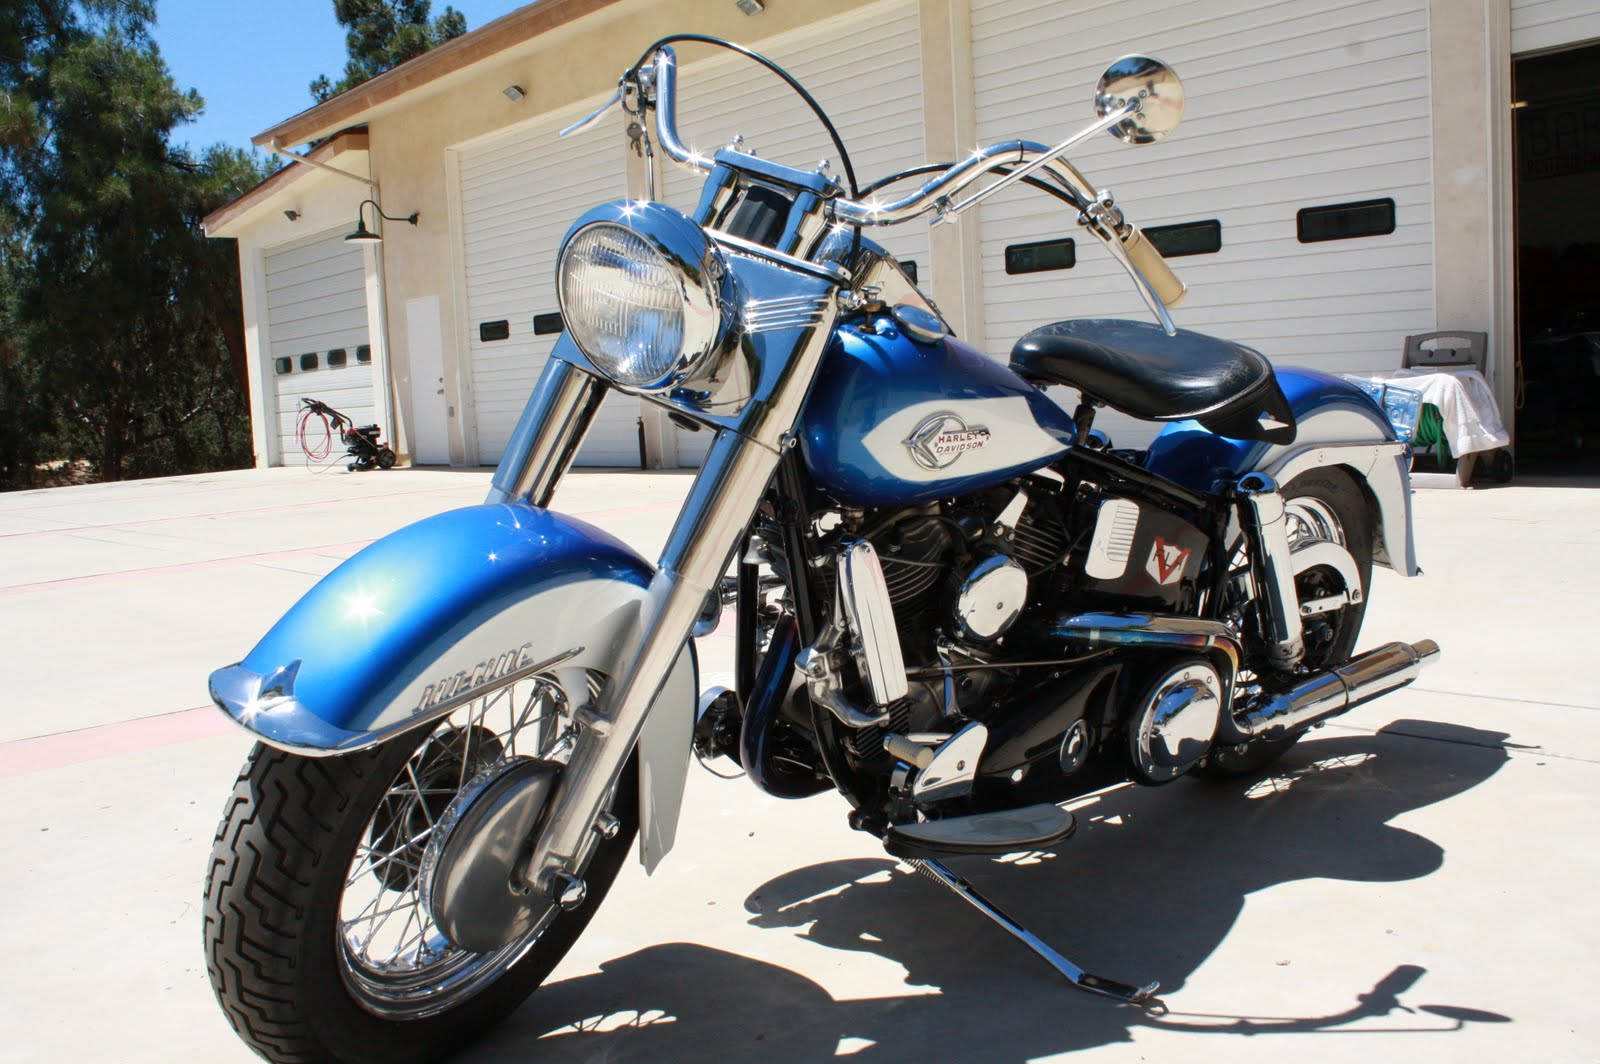 1959 Panhead Harley-Davidson for Sale